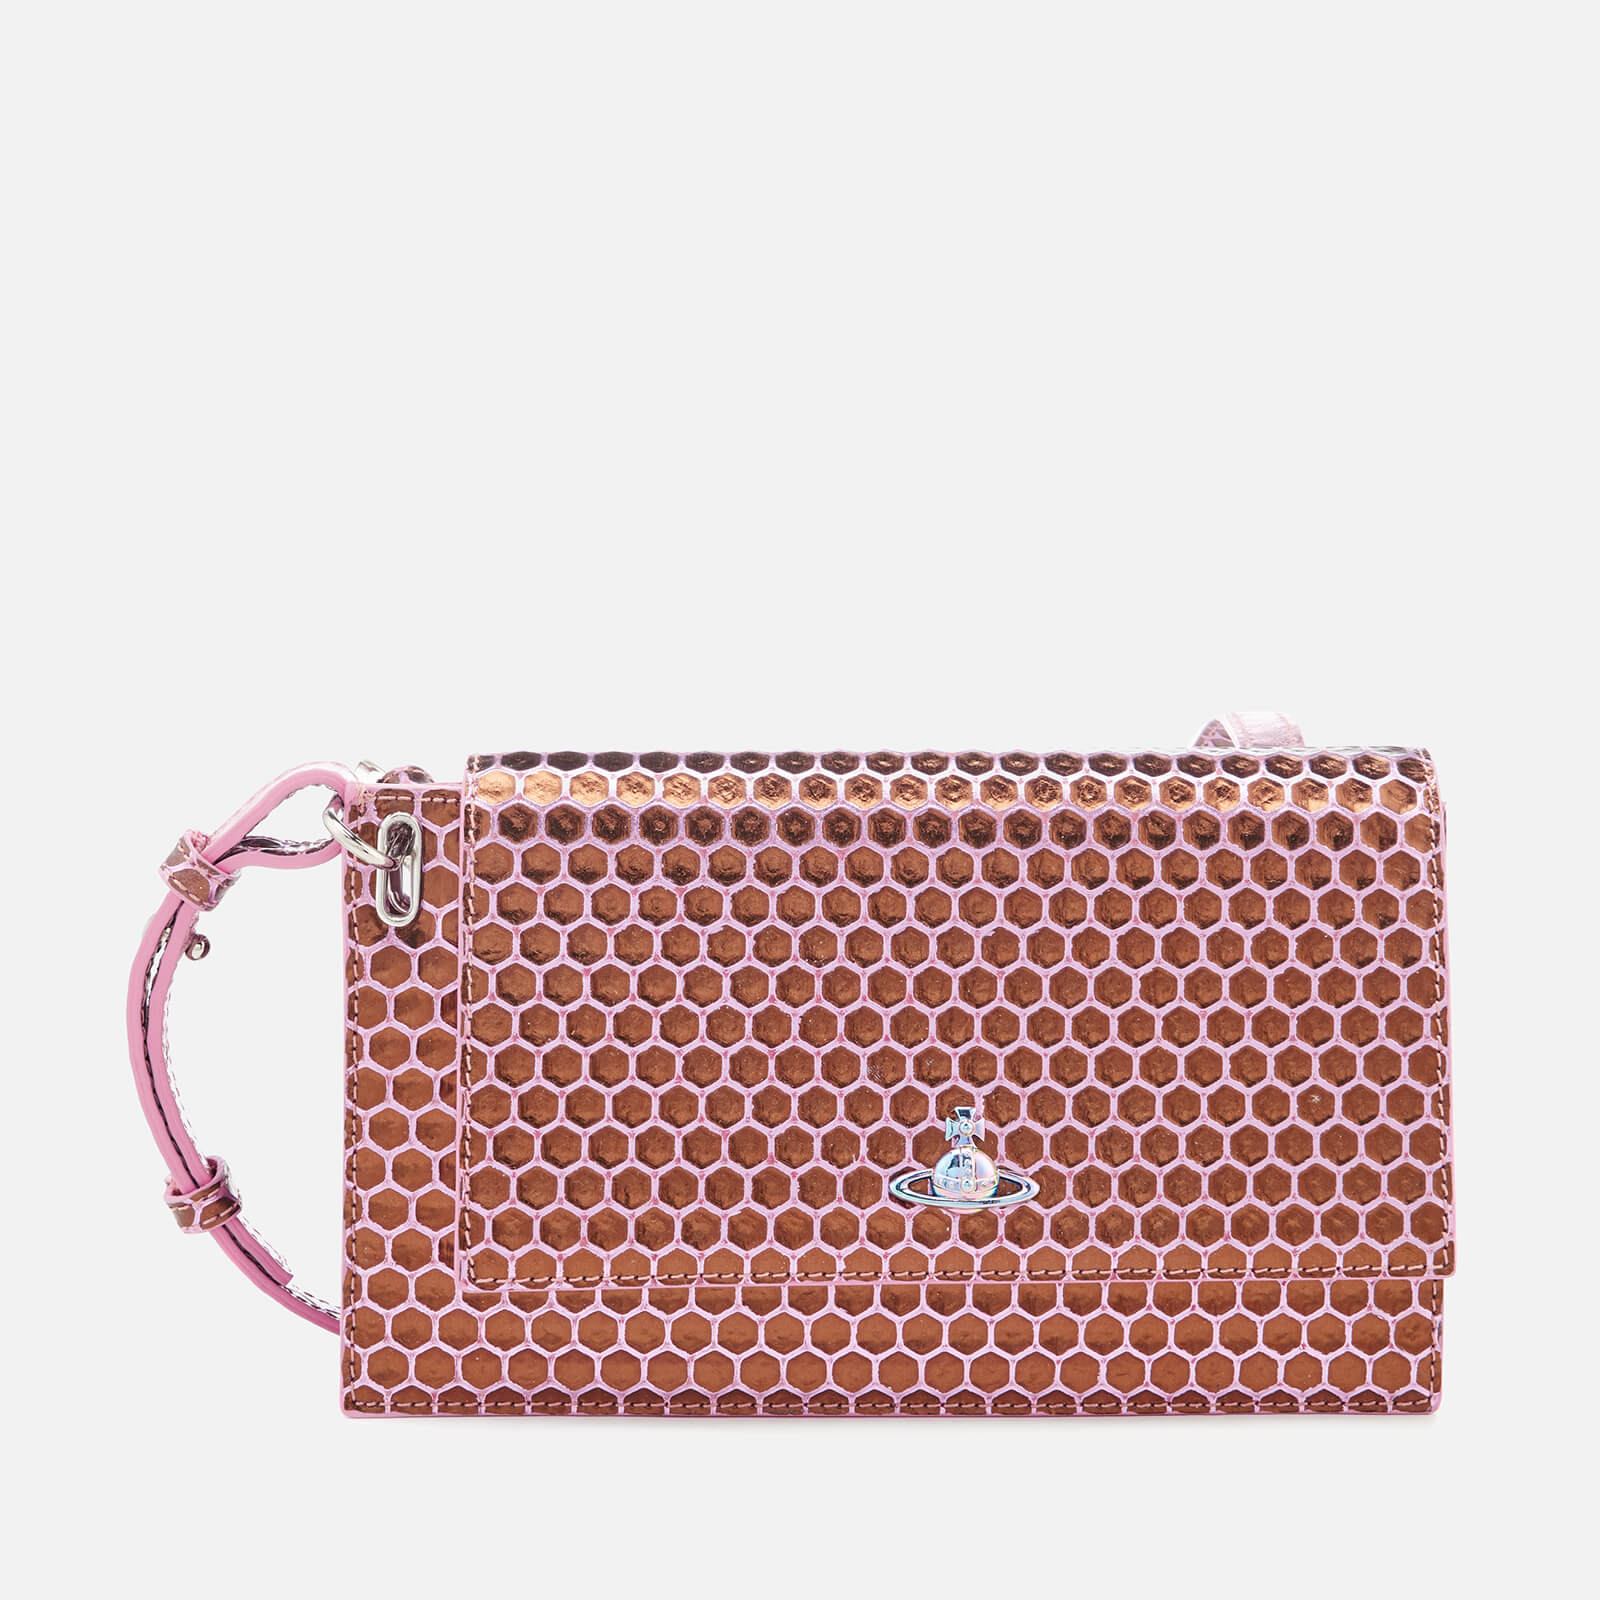 640dc2c3b1 Vivienne Westwood Women's Venice Clutch Bag - Pink - Free UK Delivery over  £50